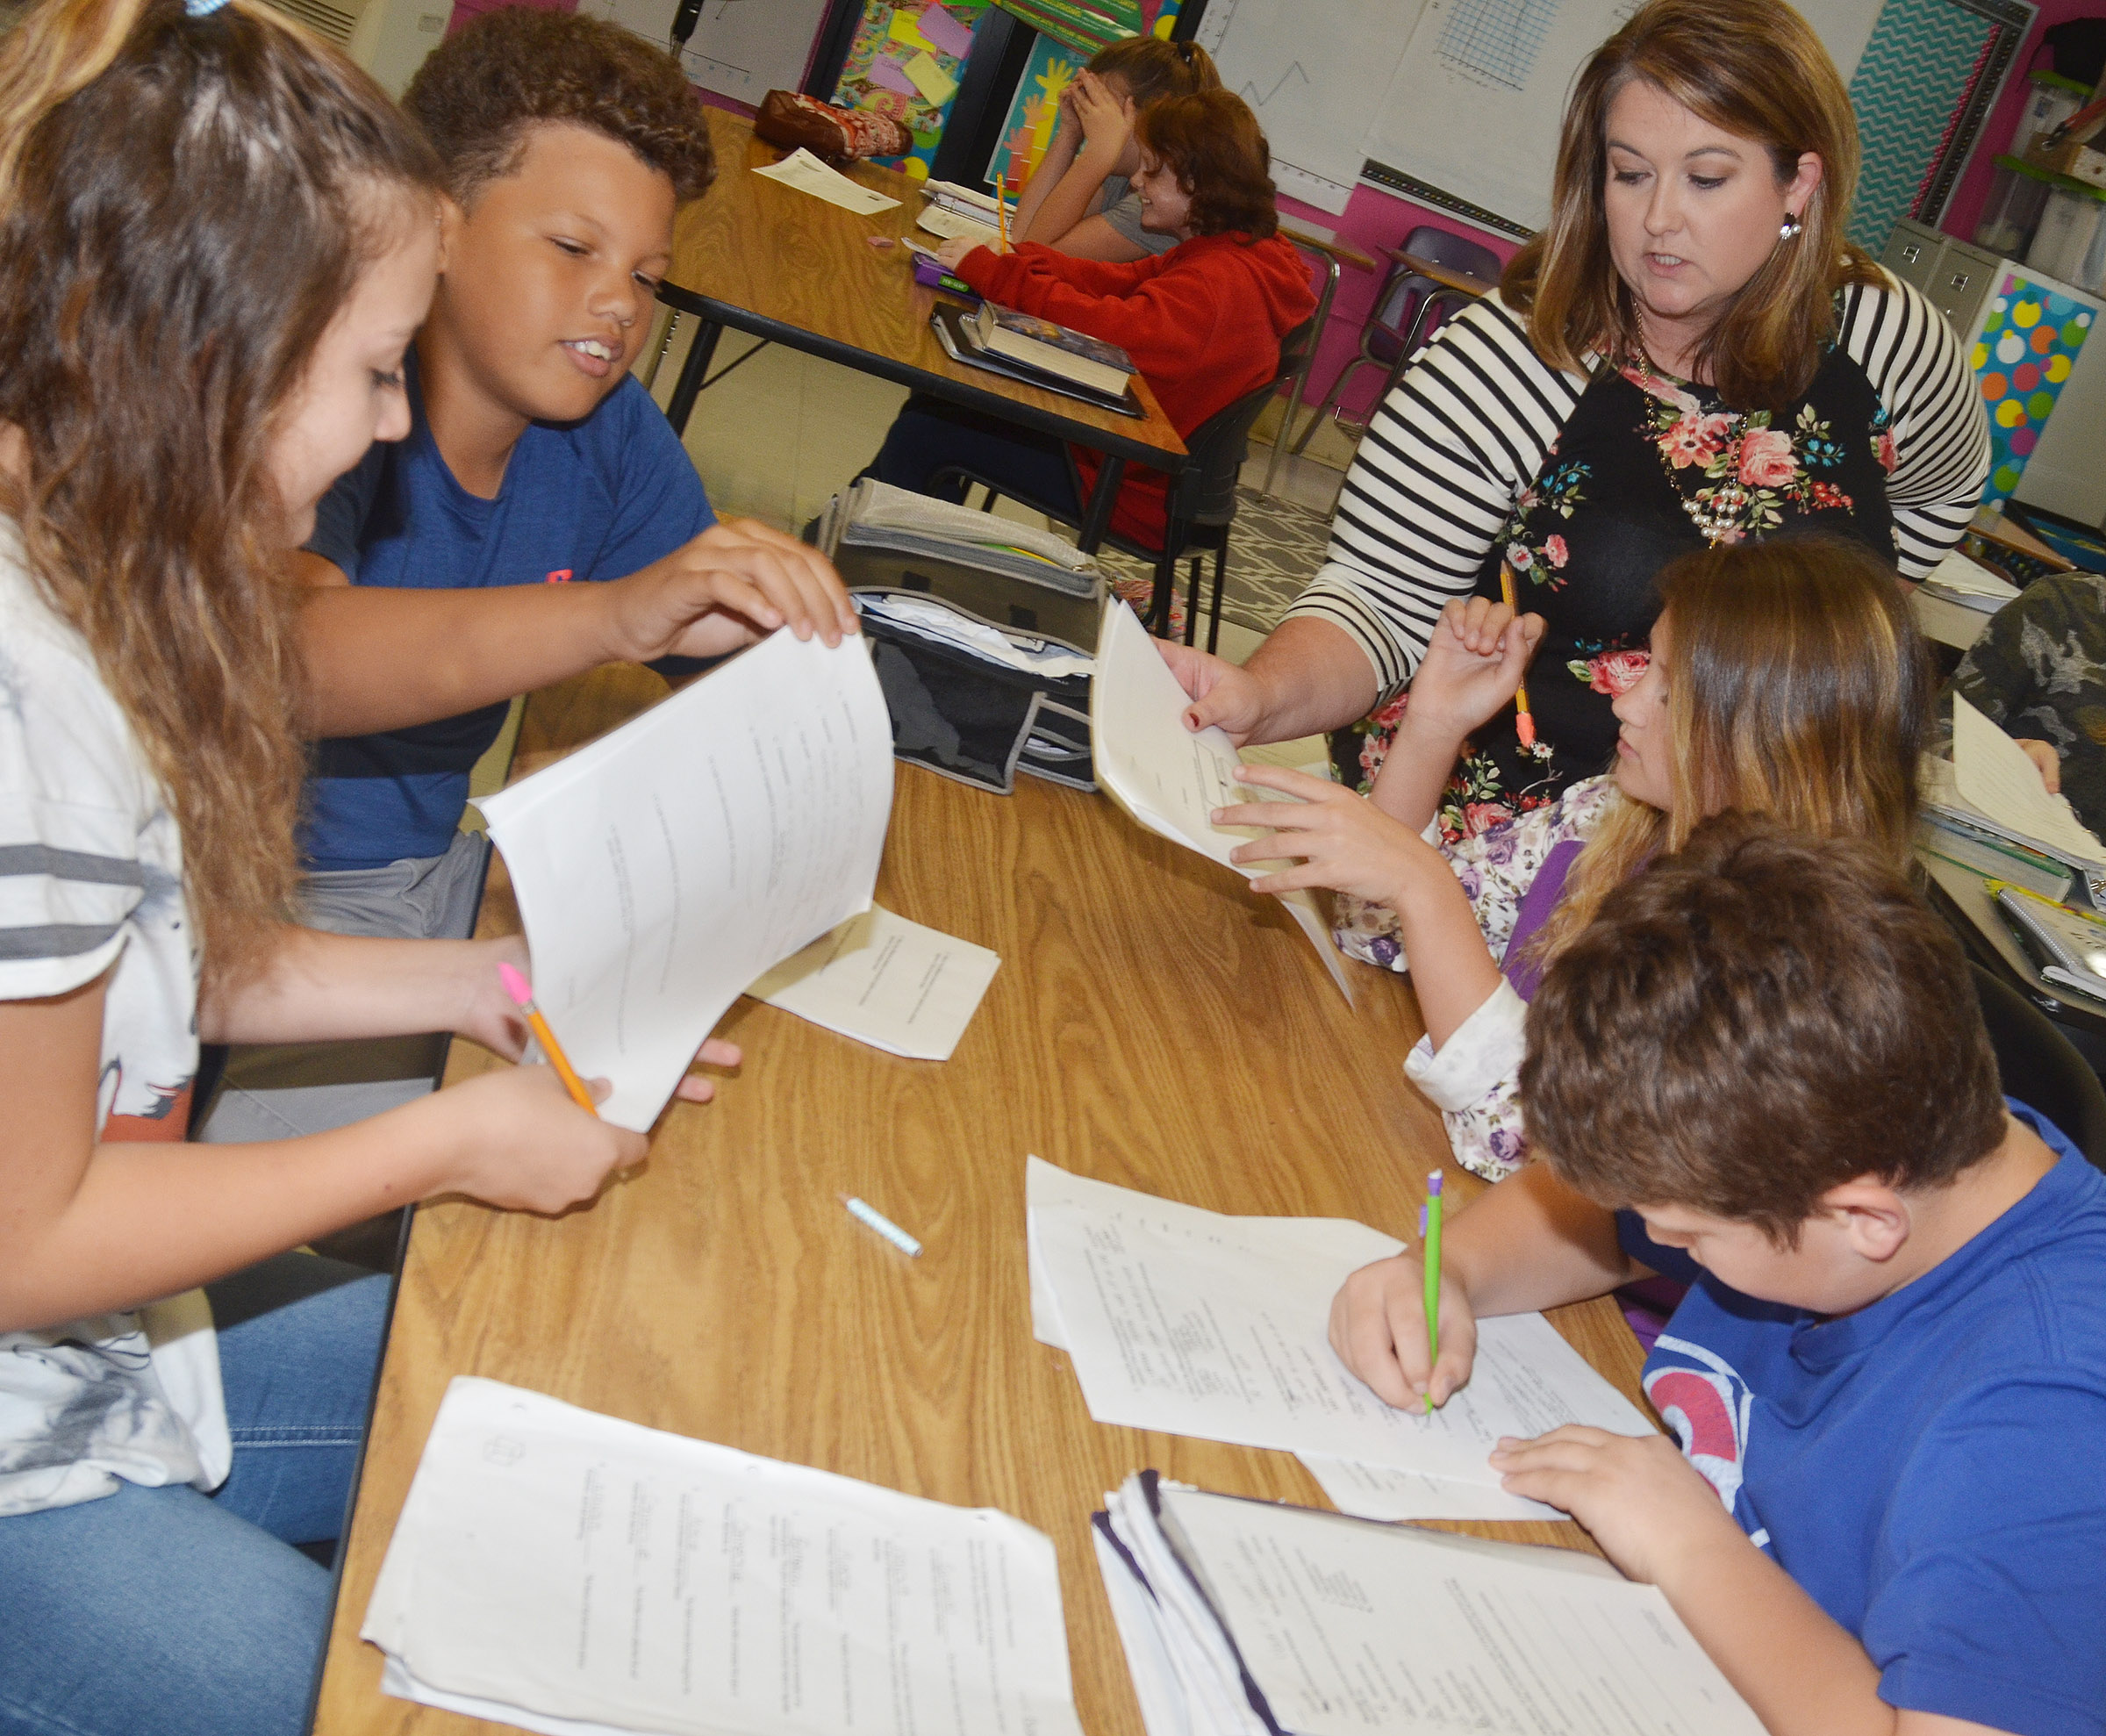 CMS science teacher Amy Knifley helps, from left, seventh-graders Briana Davis, Amare Poynter, Alexis Byers and Weston Mattingly with their study guide.